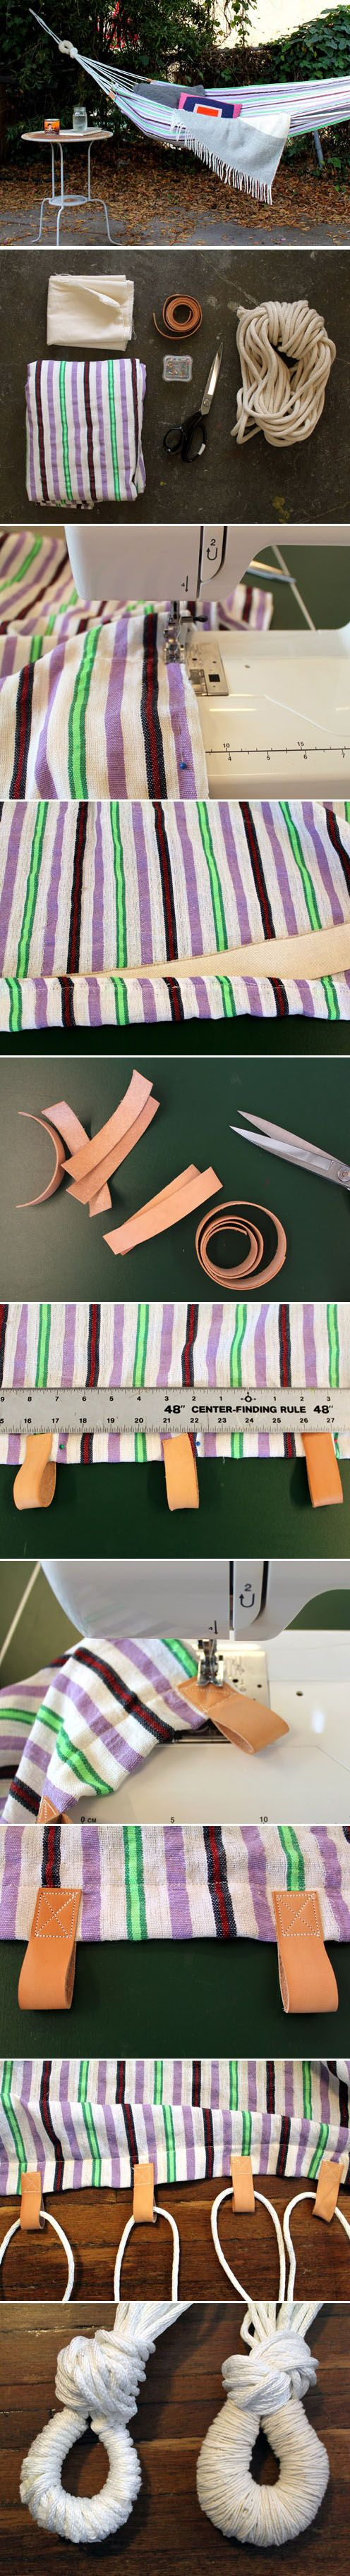 Dare I try this? I need a weight limit on my sewing lol!  Diy Easy Hammock | DIY  Crafts Tutorials